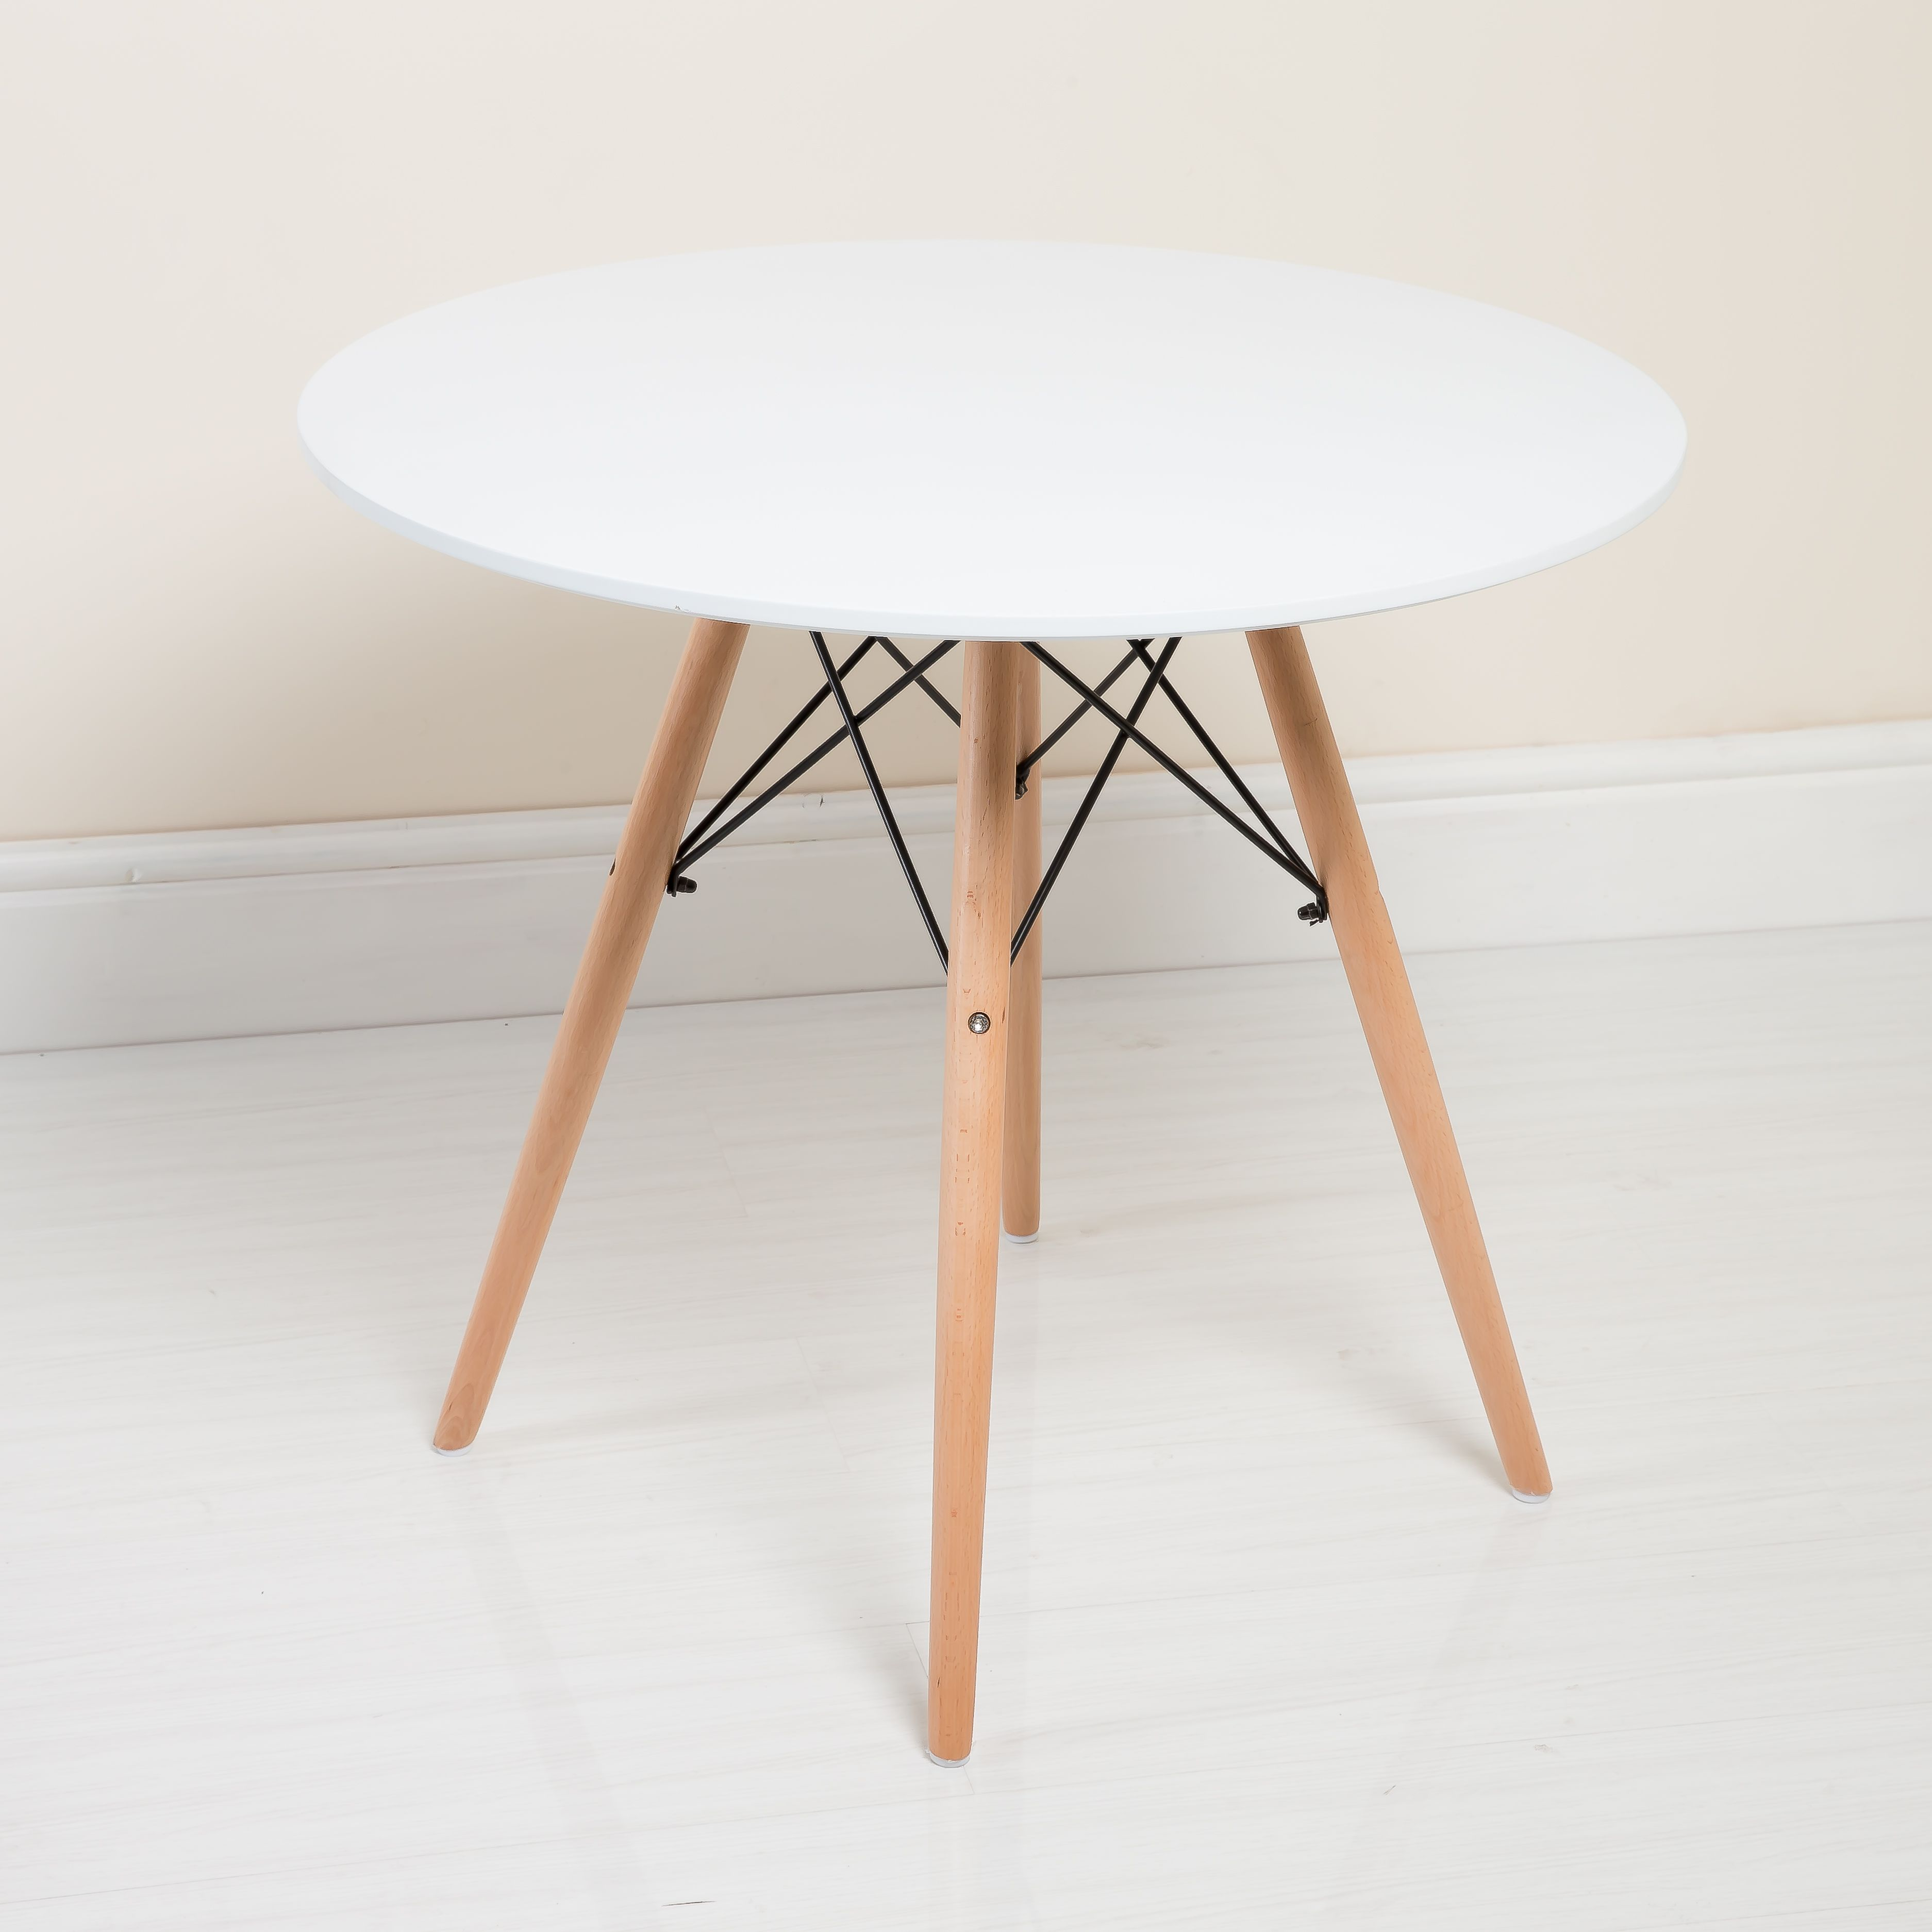 Bring a classic minimalist look to your kitchen or dining room with this Charles Eames inspired table from Abreo. #CharlesEames #Table #White http://abreo.co.uk/kitchen-furniture